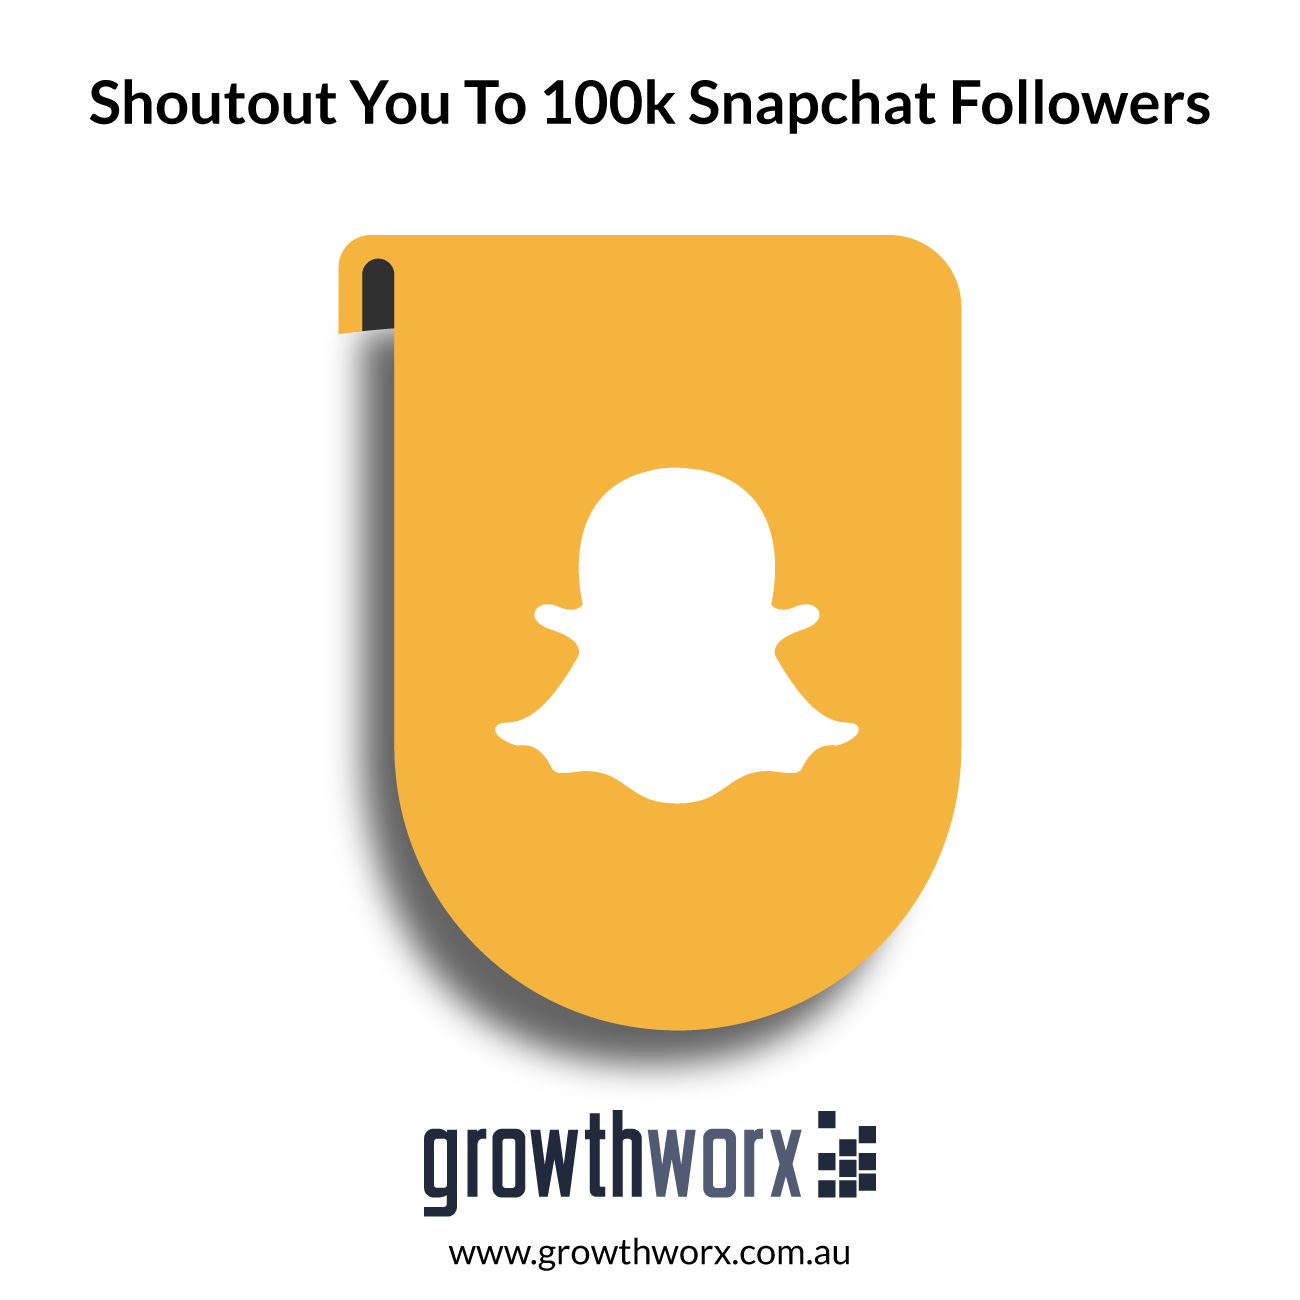 We will shoutout you to 100k snapchat real targeted followers 1